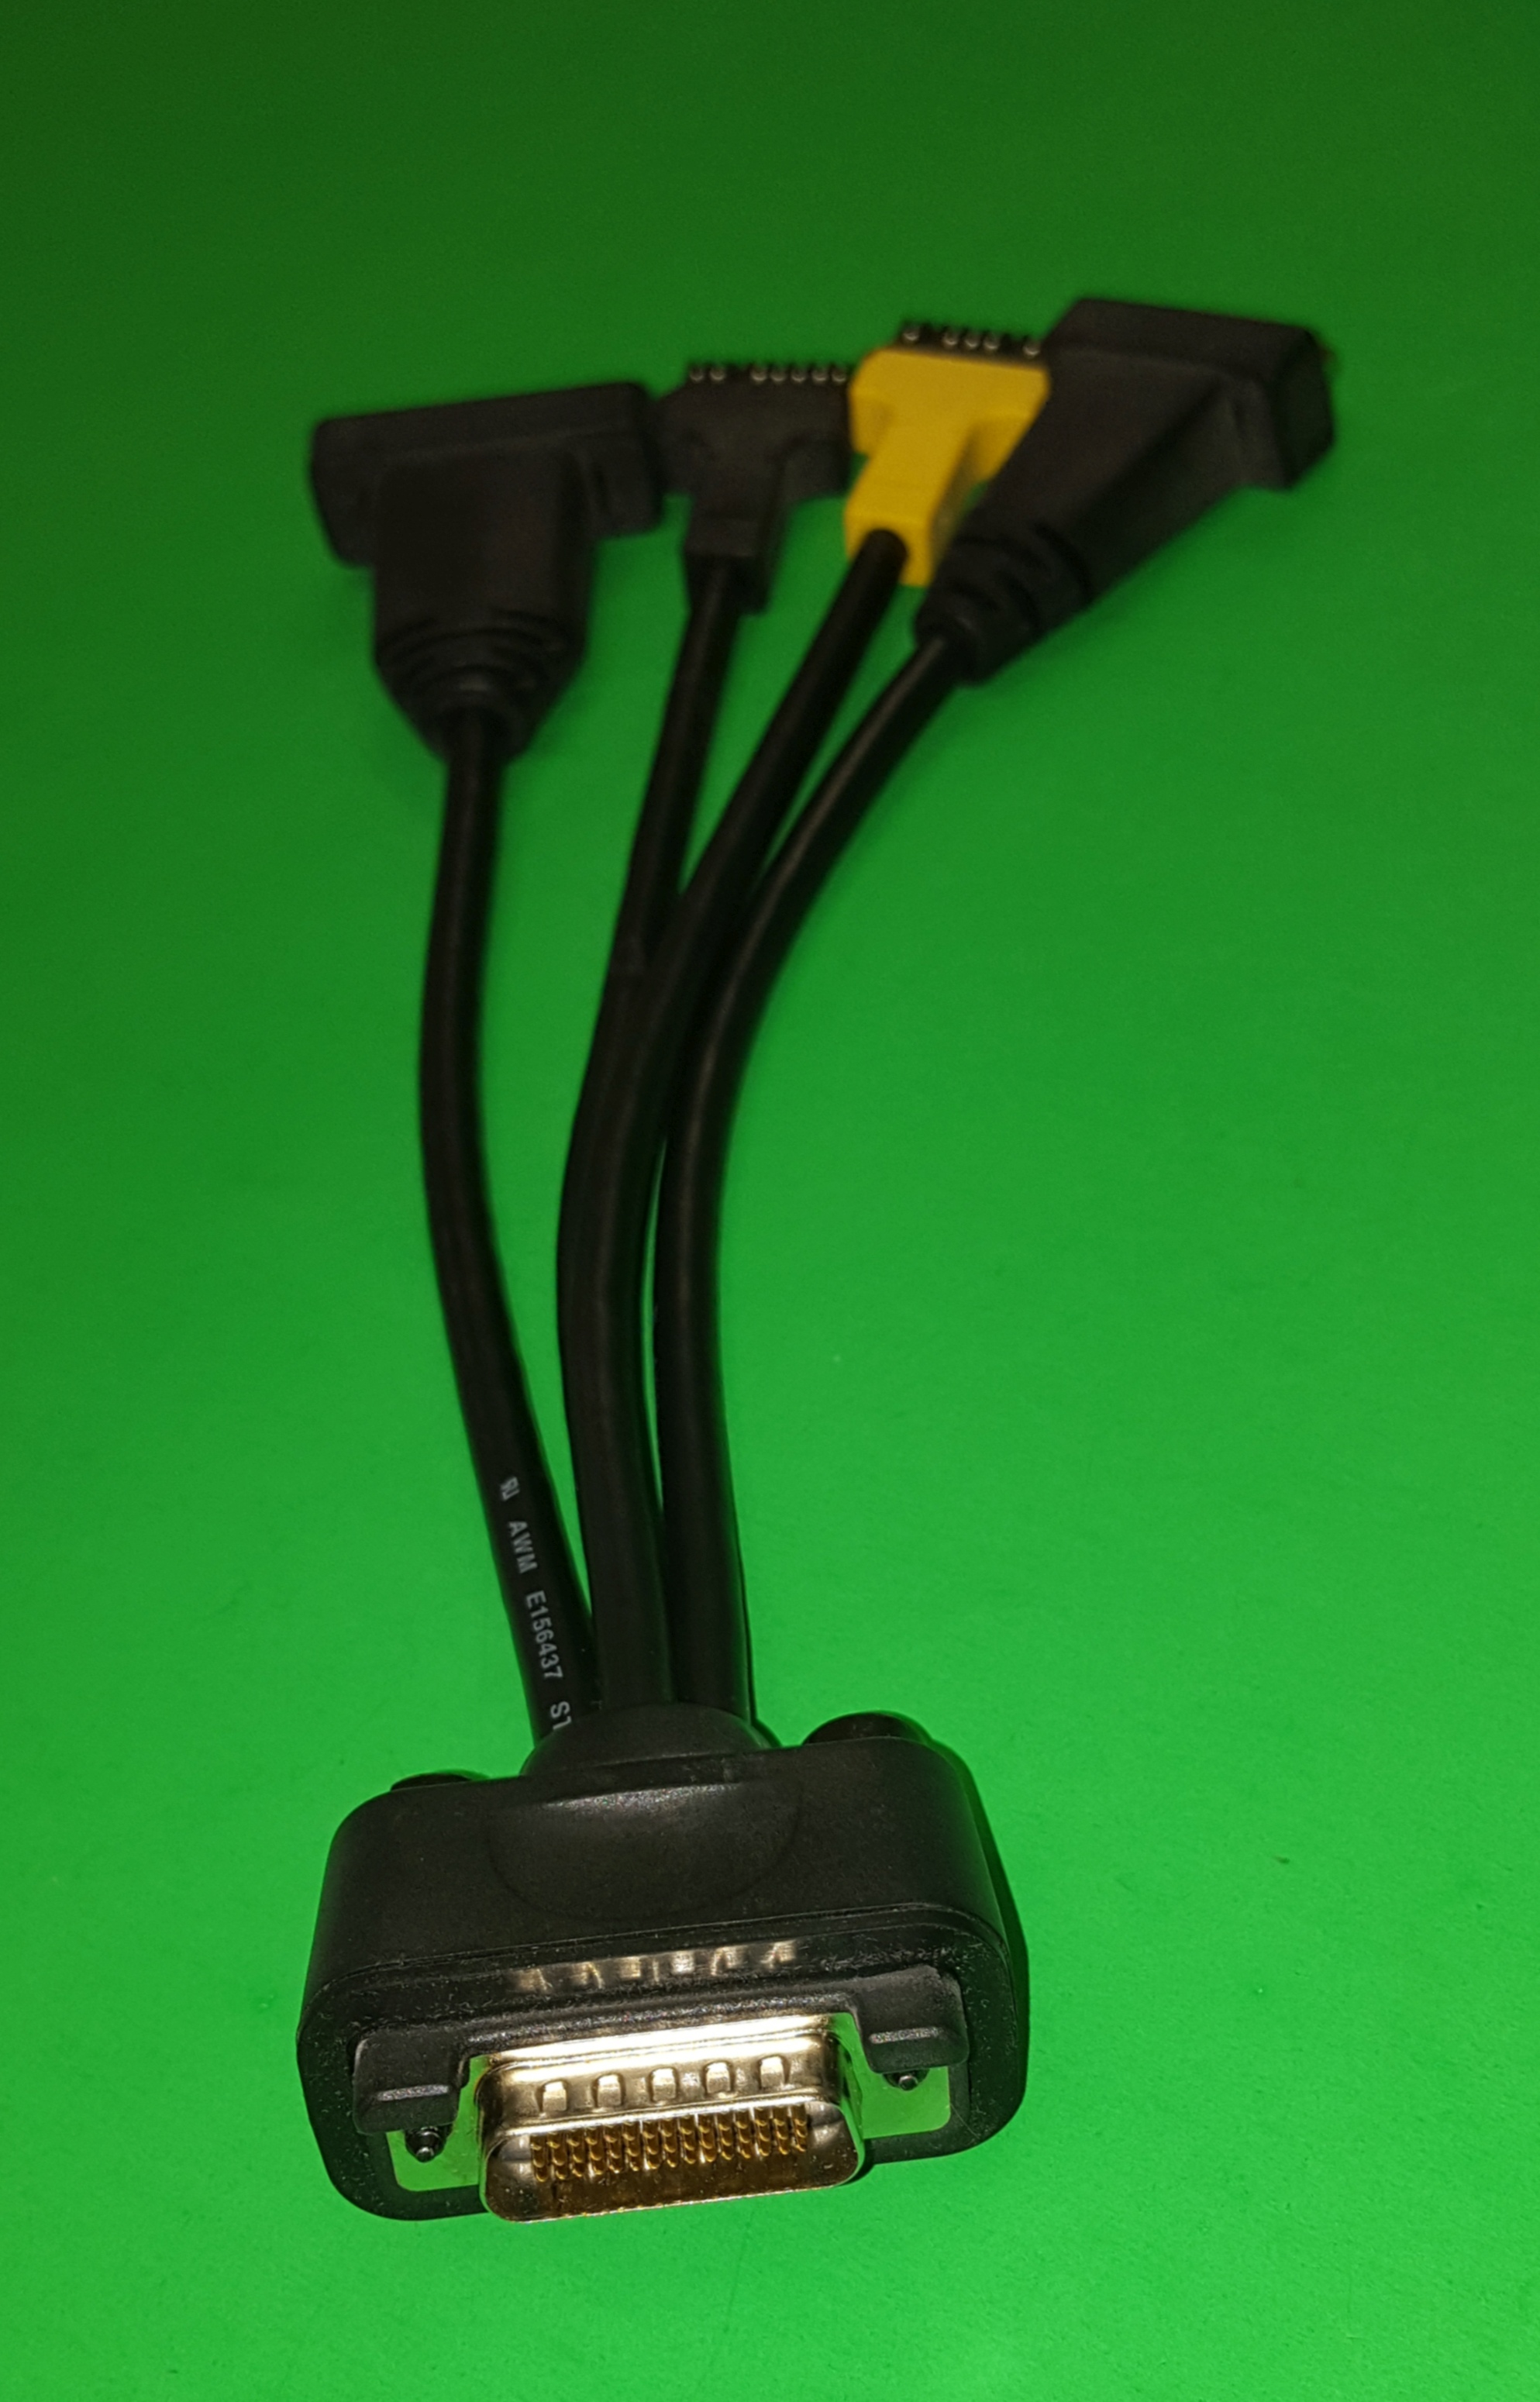 Products from Custom Cables to PCBA and Turnkey Assemblies